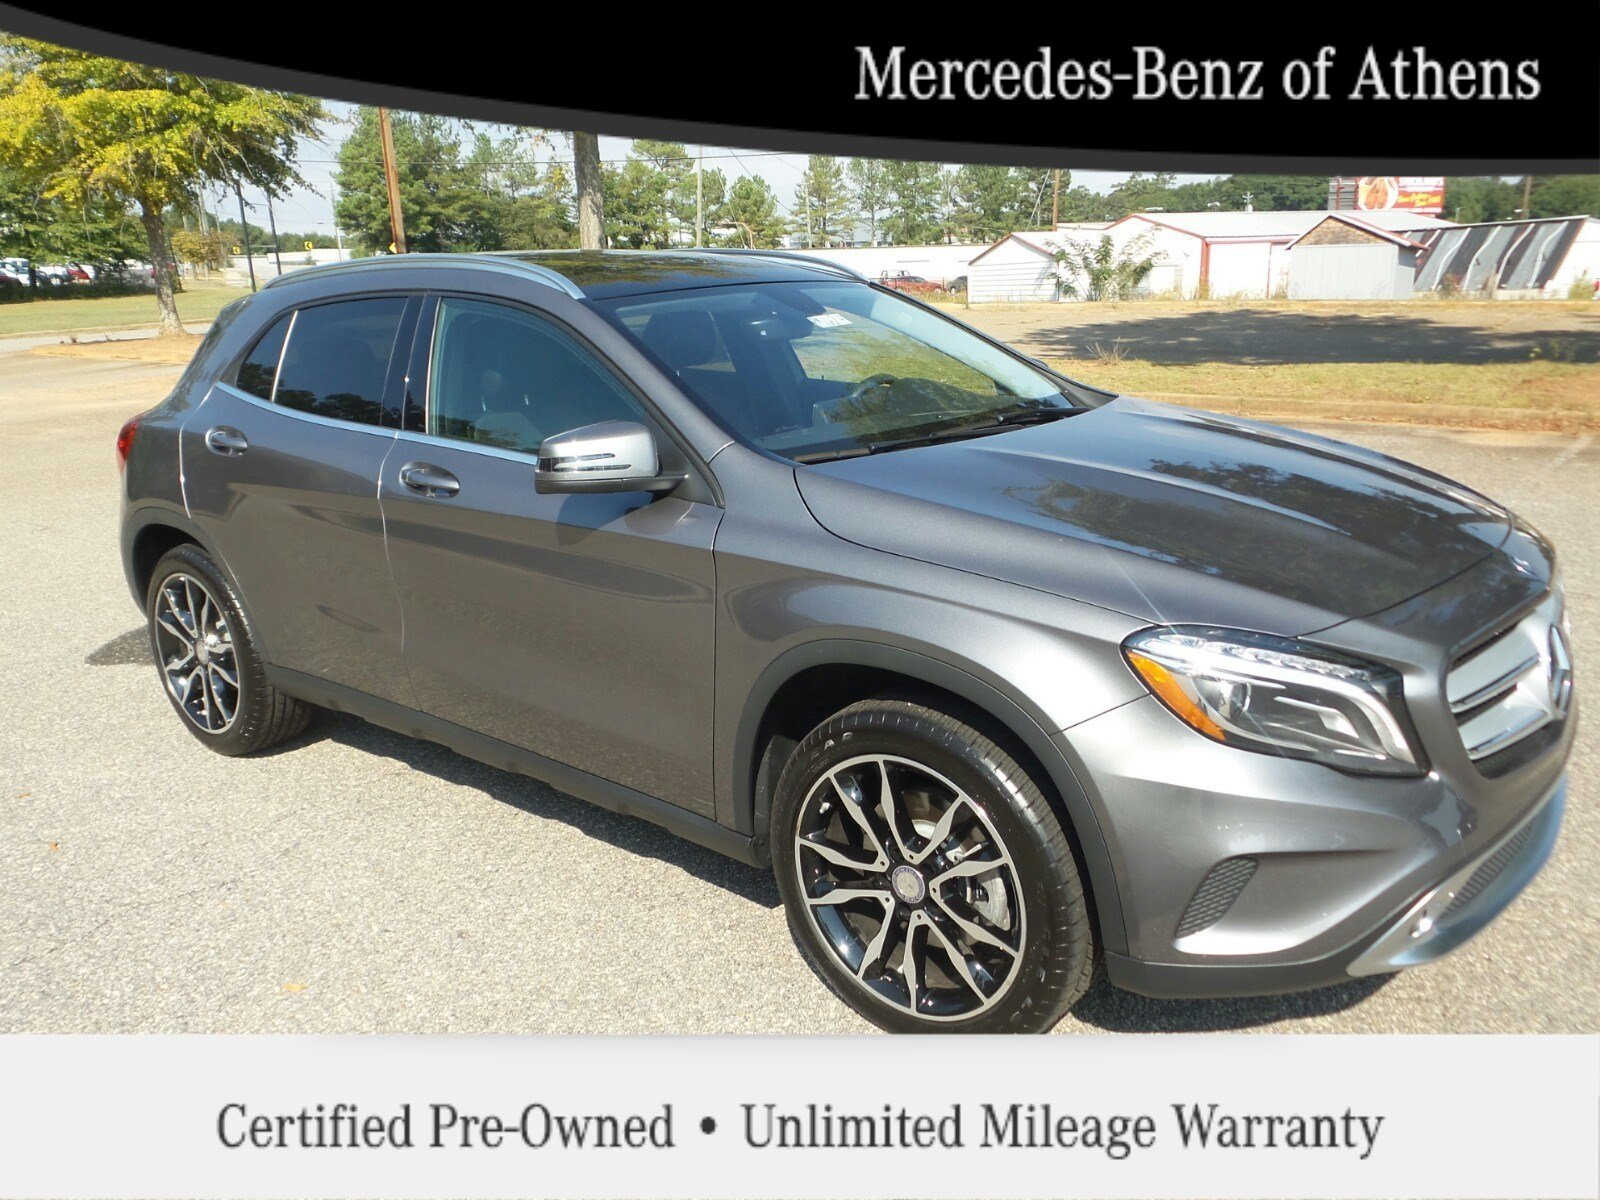 Certified pre owned 2015 mercedes benz gla gla250 suv in for Certified pre owned mercedes benz